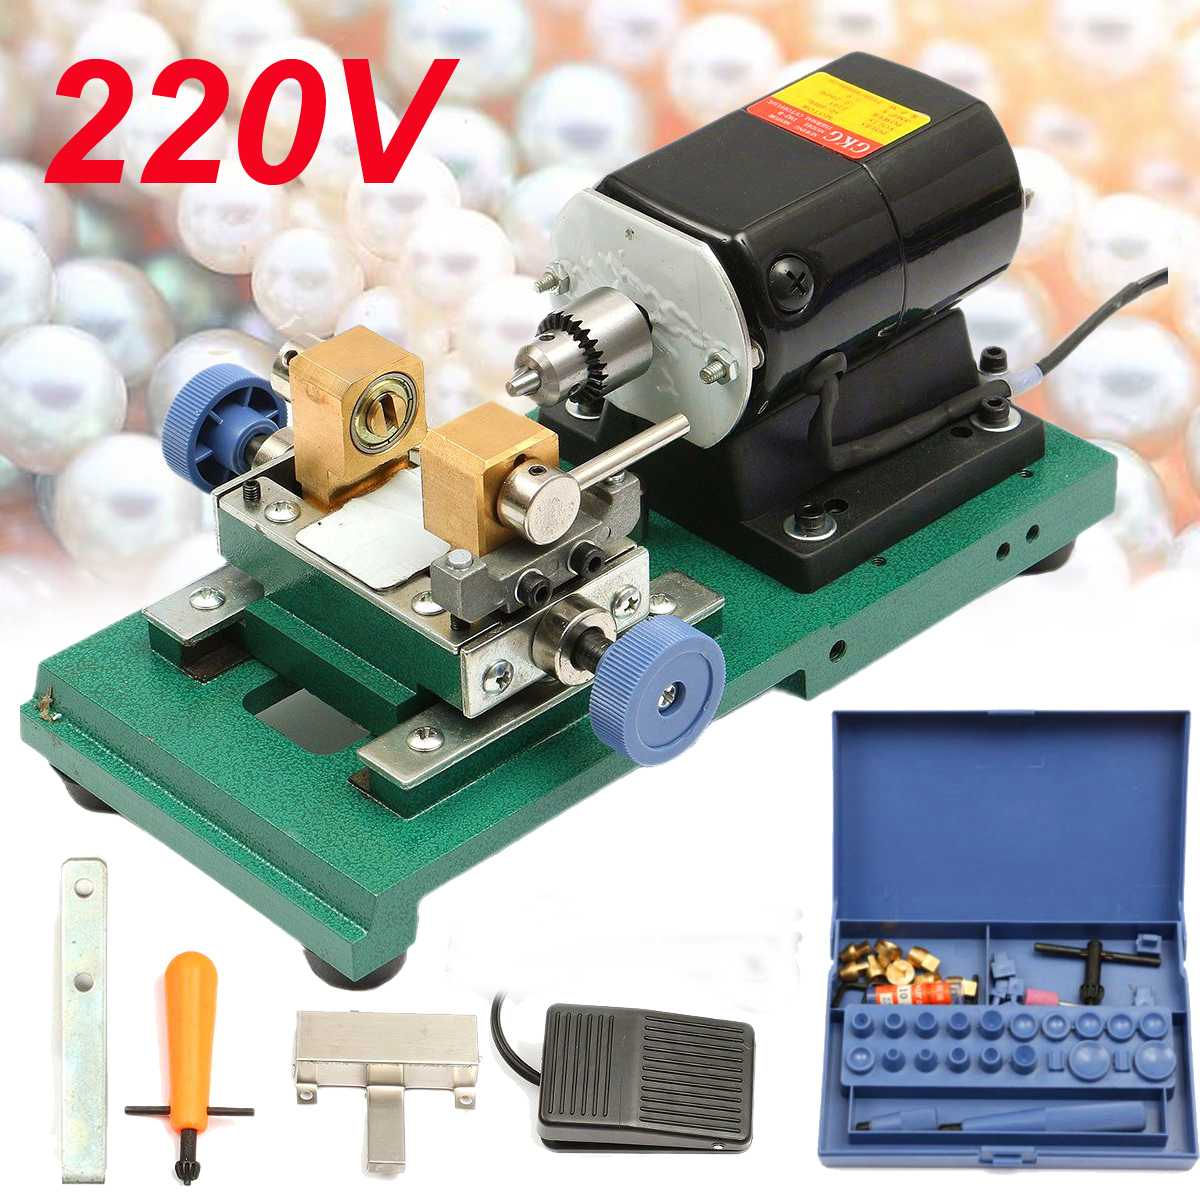 220V 360W Pearl Drilling Holing Machine Maker  Gold Control Set Full Set Tool